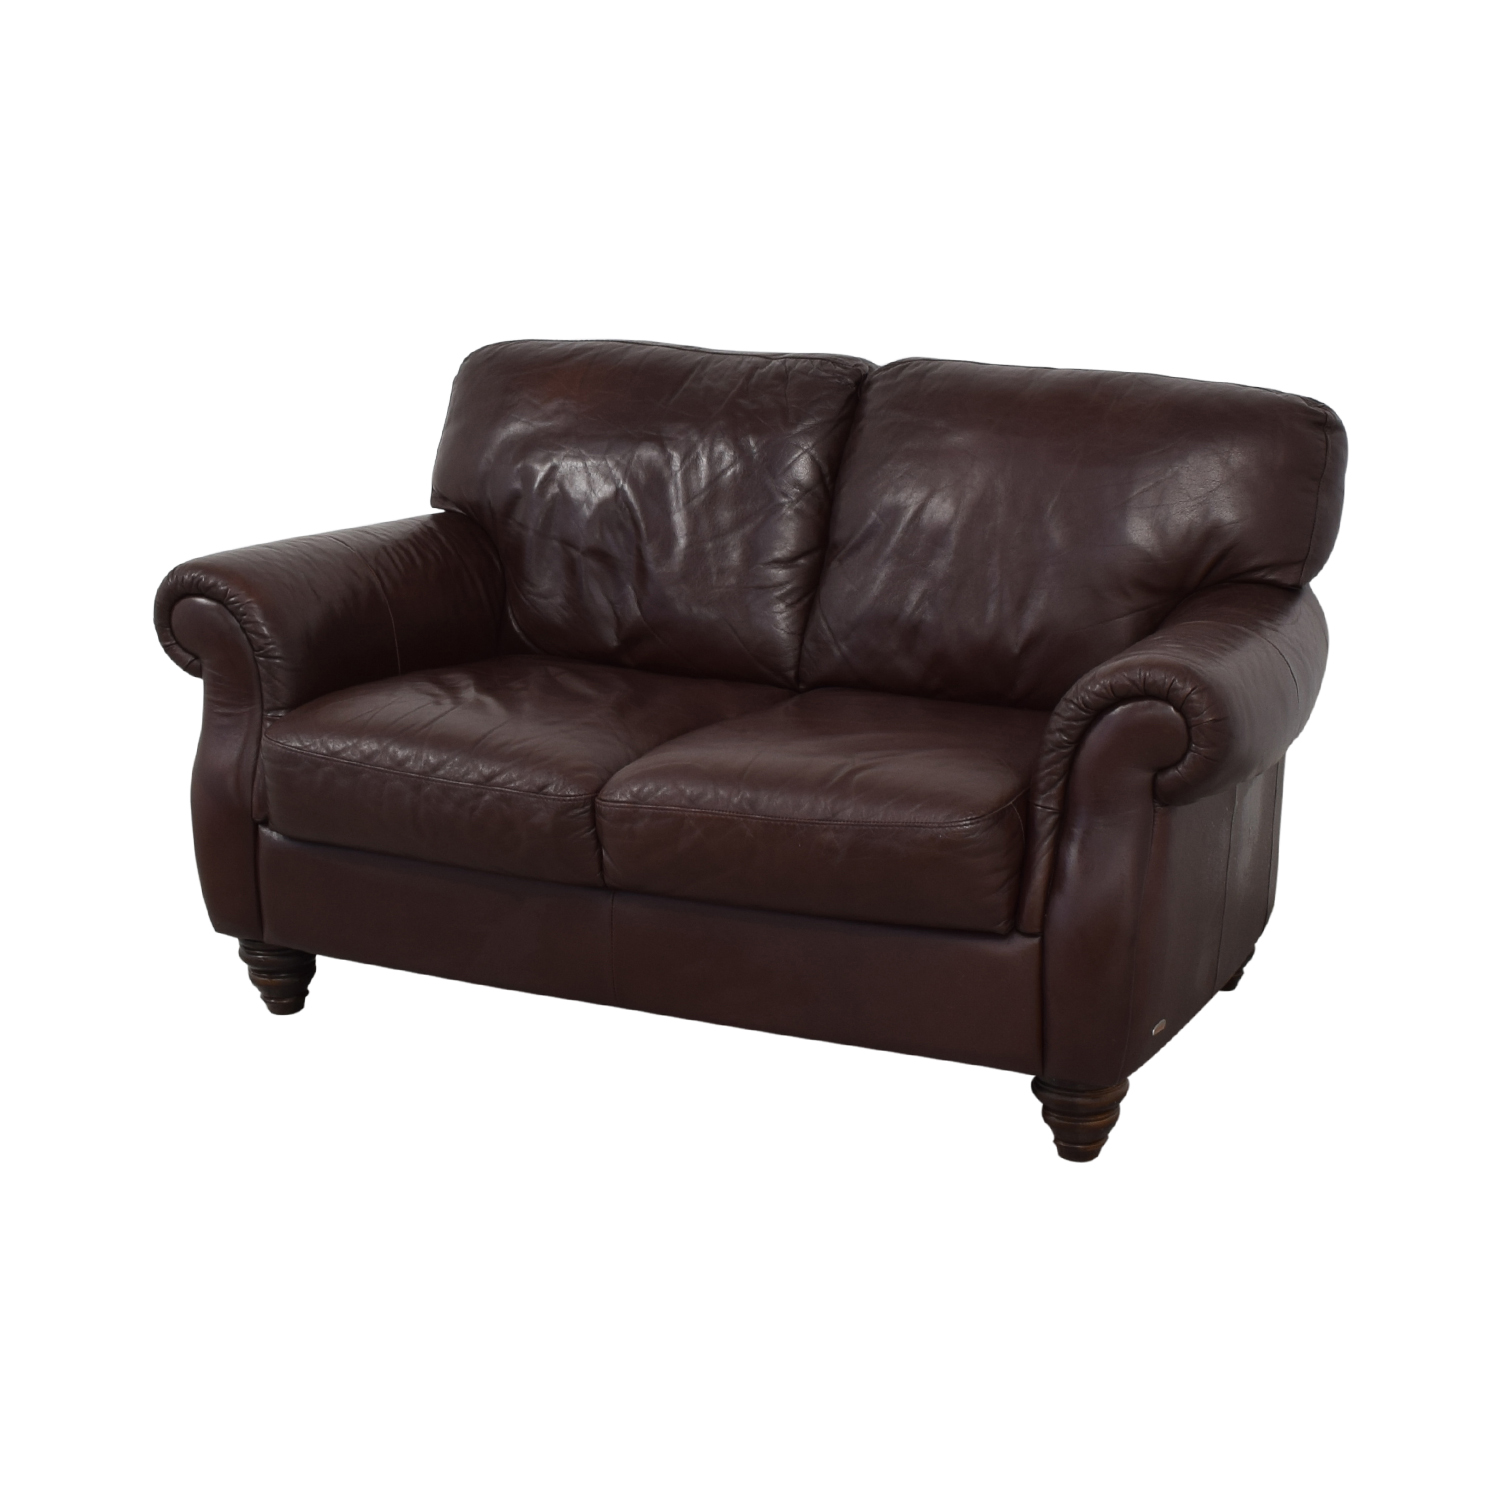 buy Italia Fortunoff Brown Two-Cushion Love Seat Fortunoff Sofas